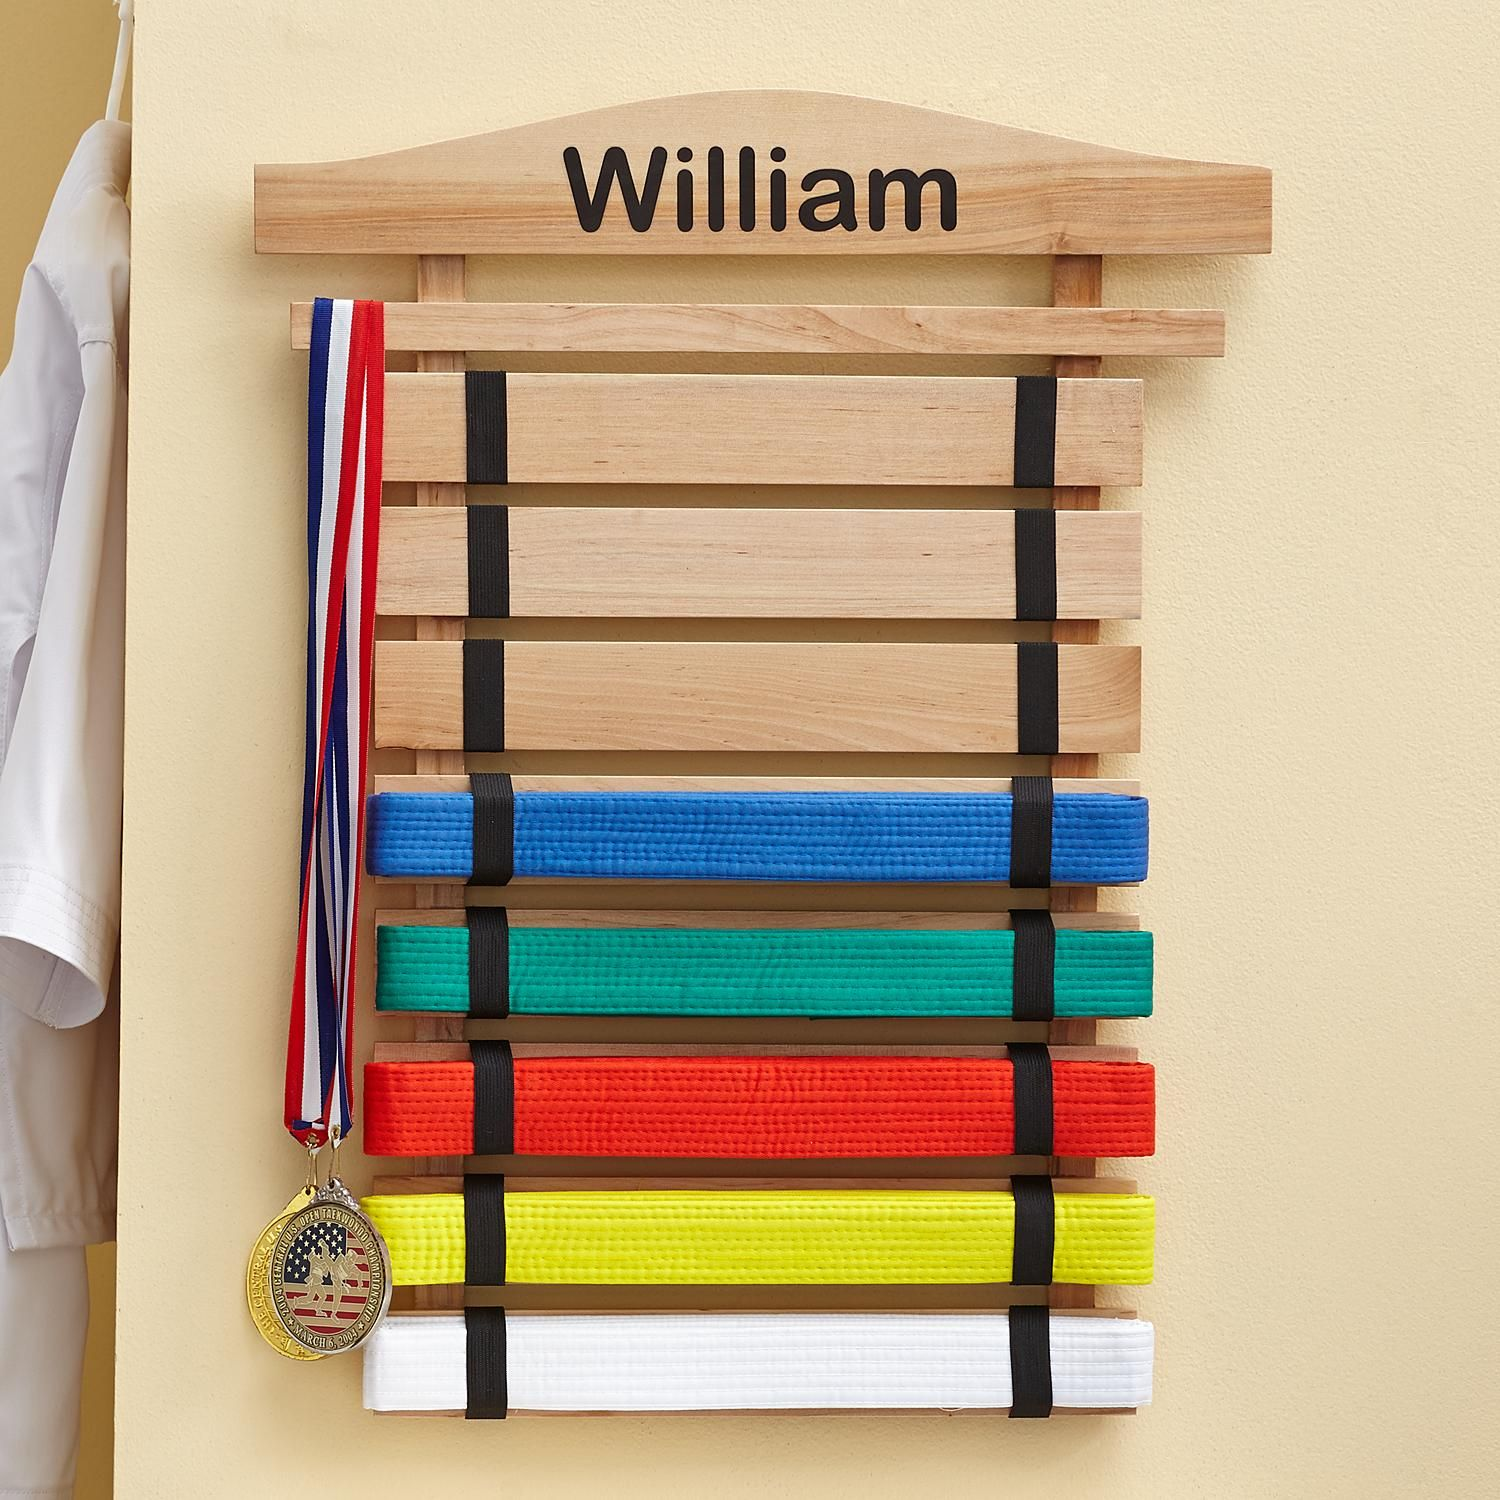 6 Rack Martial Arts belt holder rack display Karate birthday gift taekwondo